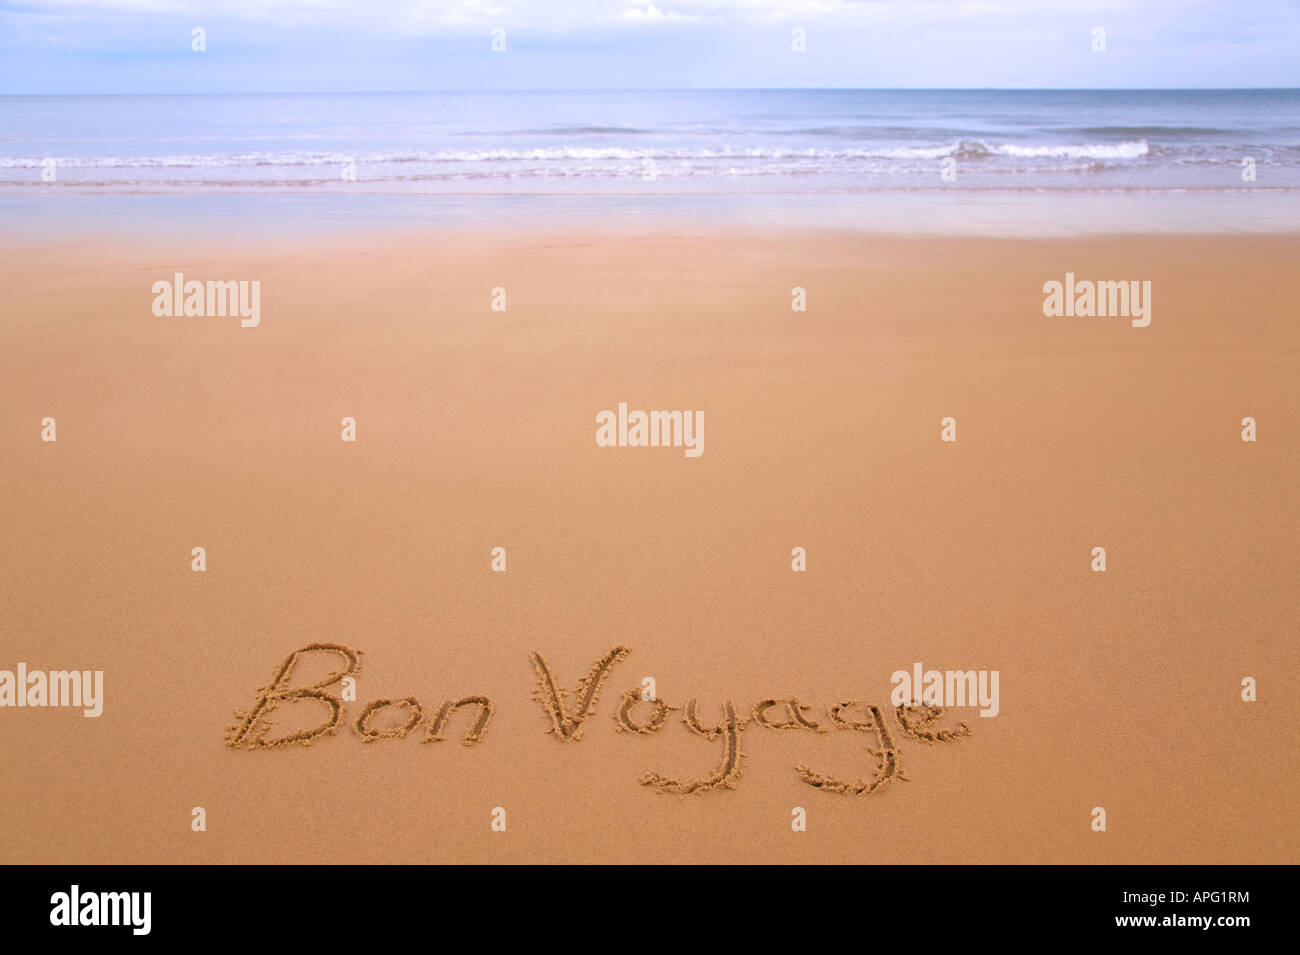 Bon Voyage written in sand on a golden sandy beach sea and horizon in the distance - Stock Image